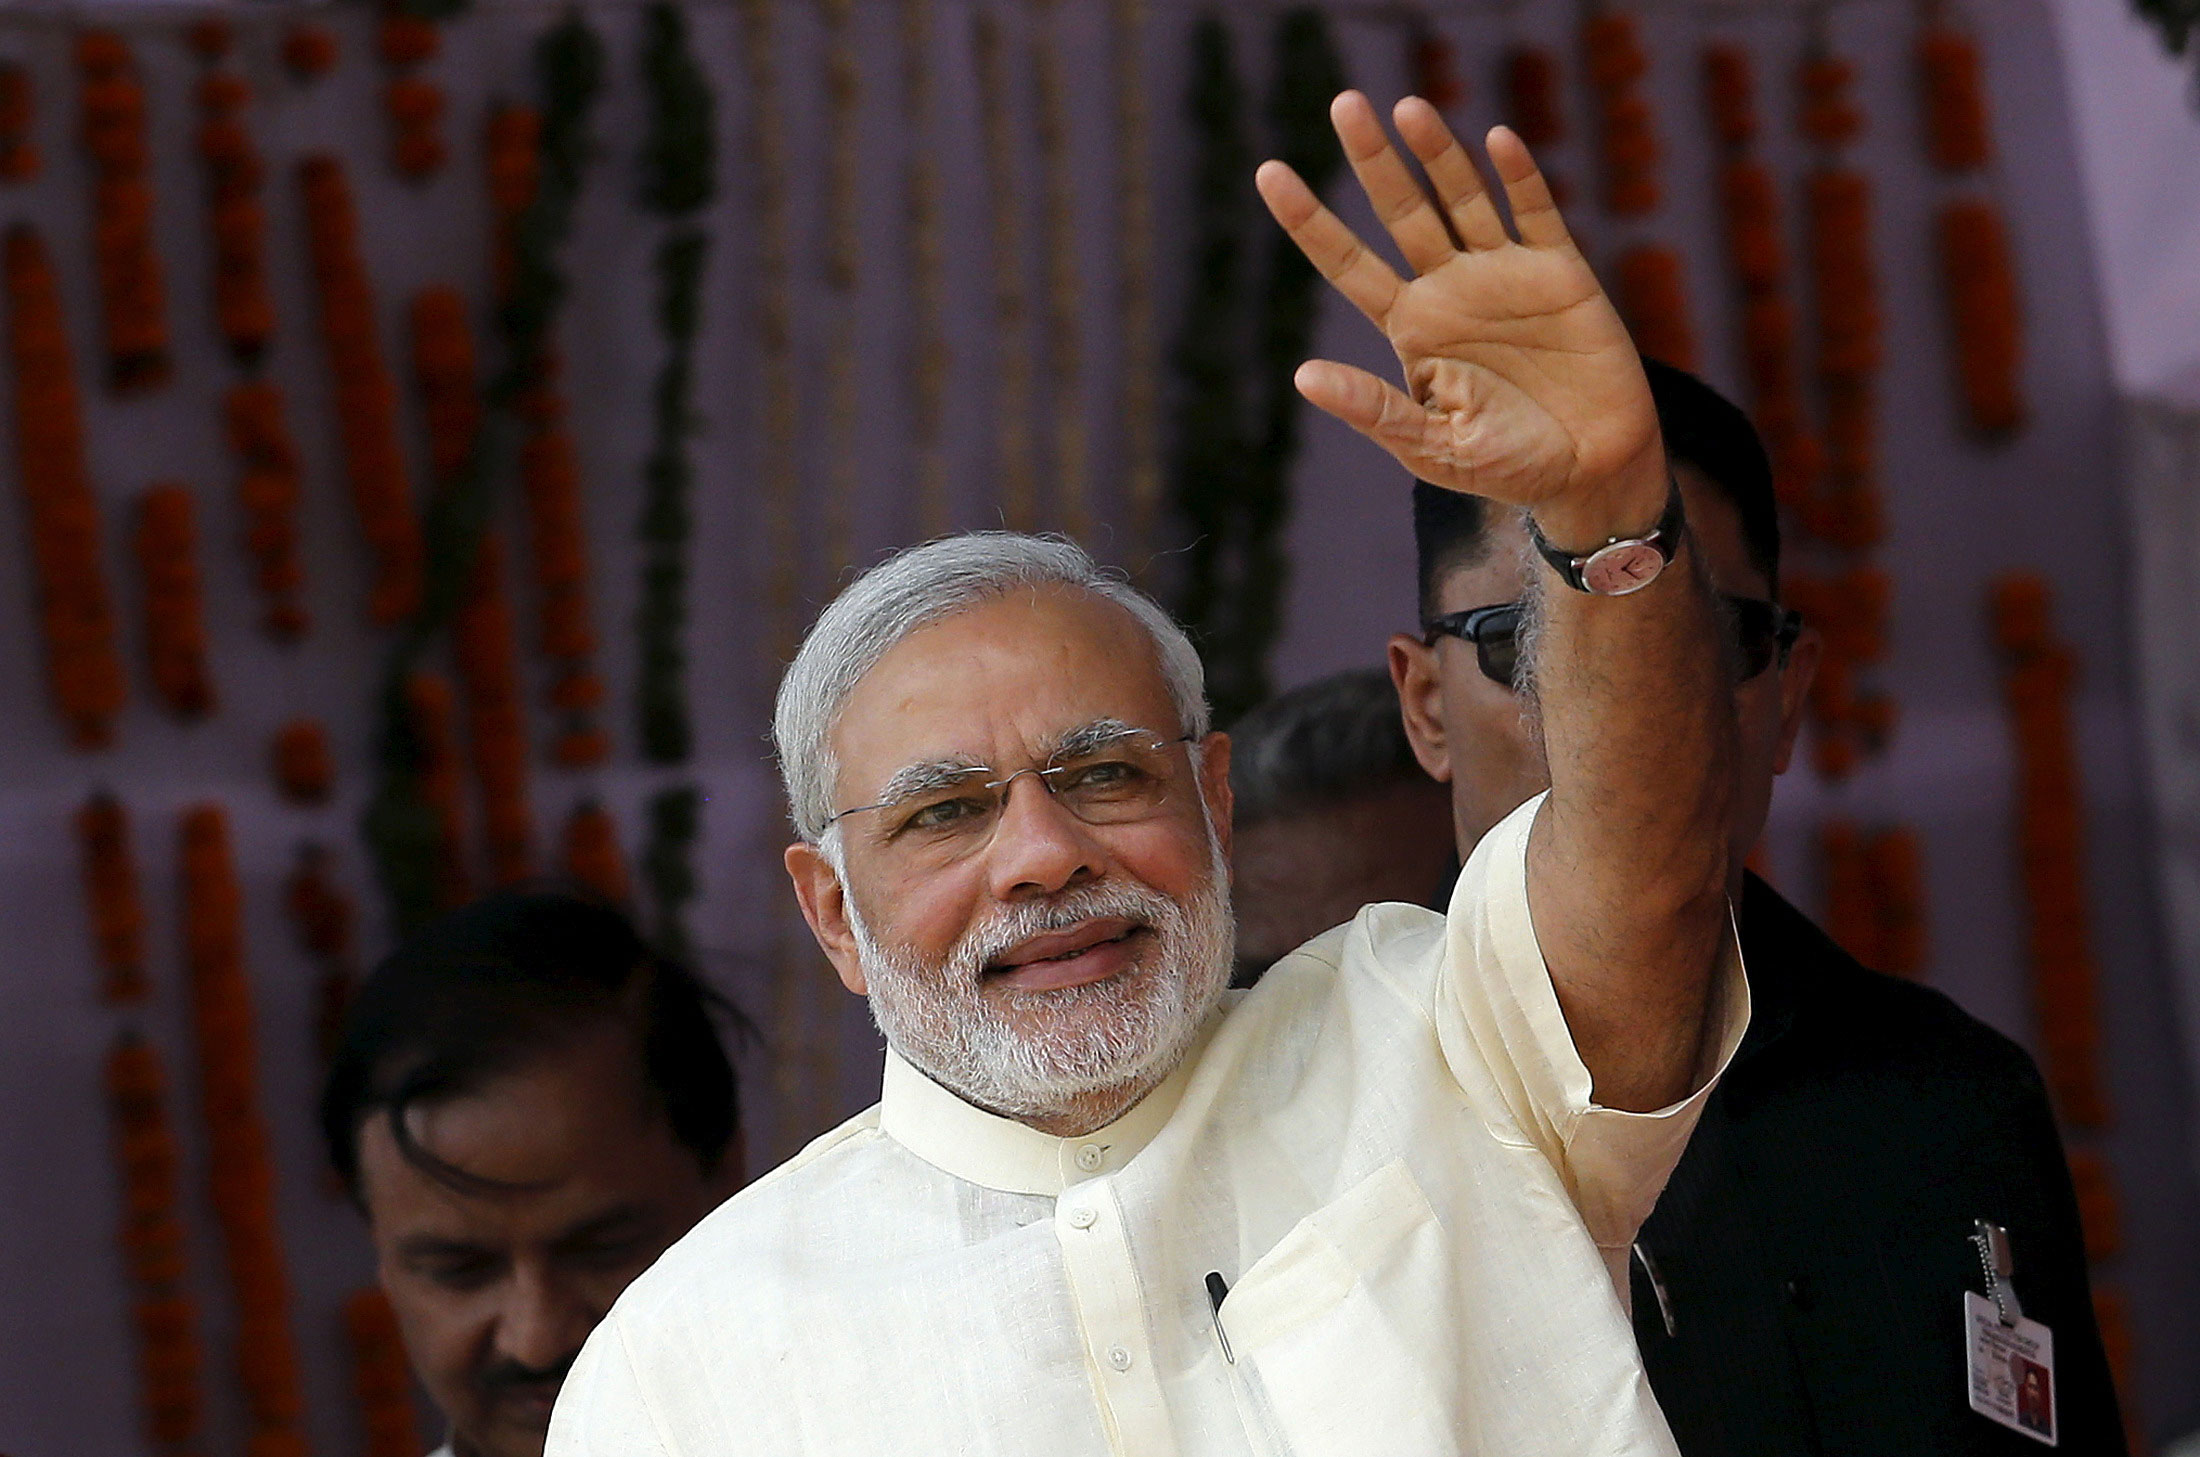 #ModiYearOne: There is much more to be done and I know your expectations are high: Modi